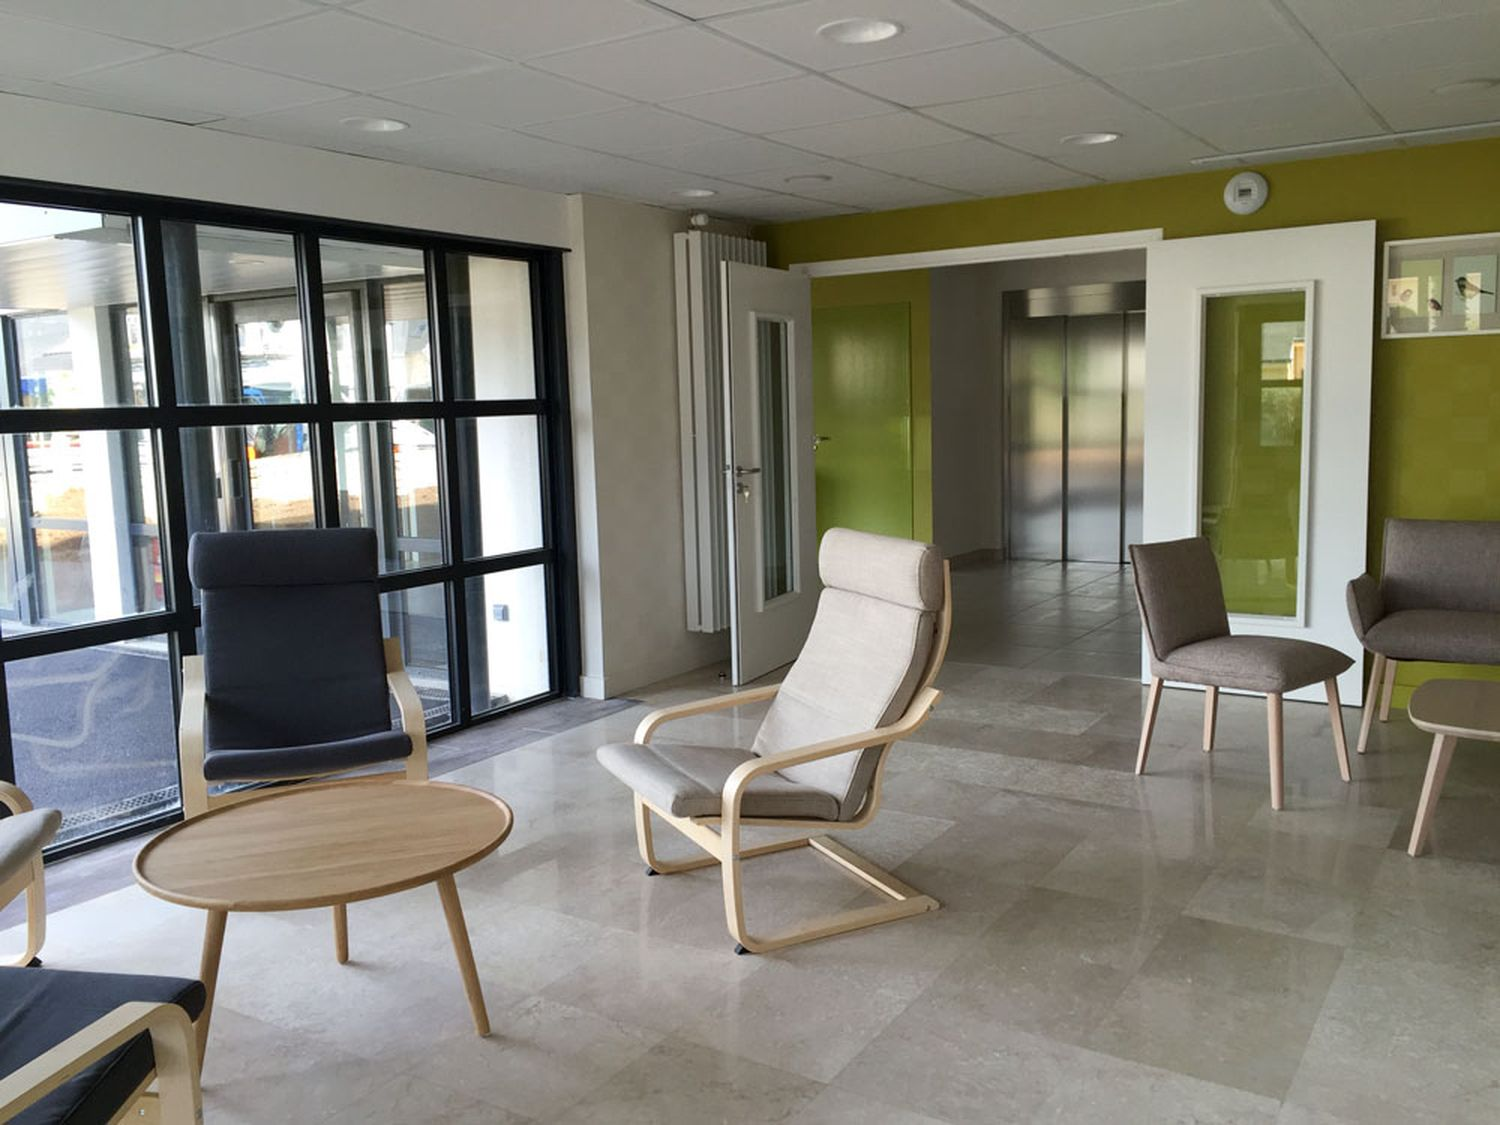 Rénovation-transformation-dun-hotel-en-residence-service-à-Sainte-Anne-dAuray-Architecte-Vannes-19